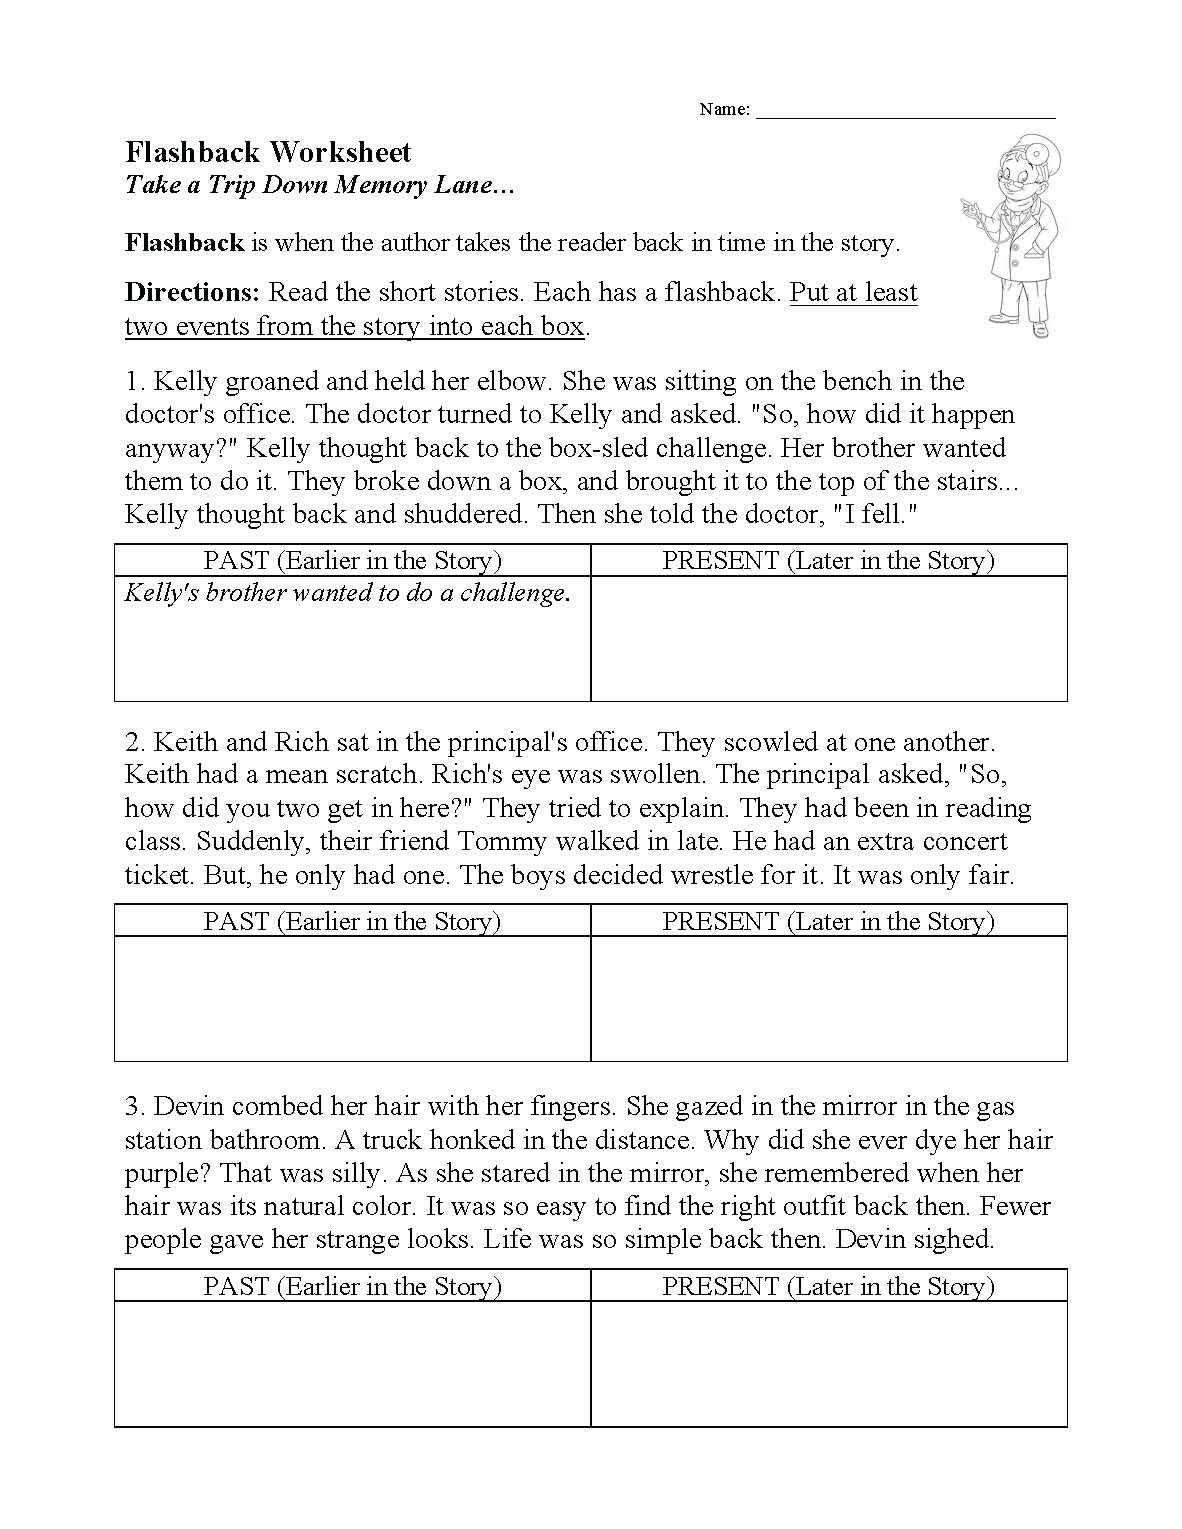 This is a preview image of our Flashback Worksheet. Click on it to enlarge or view the source file.